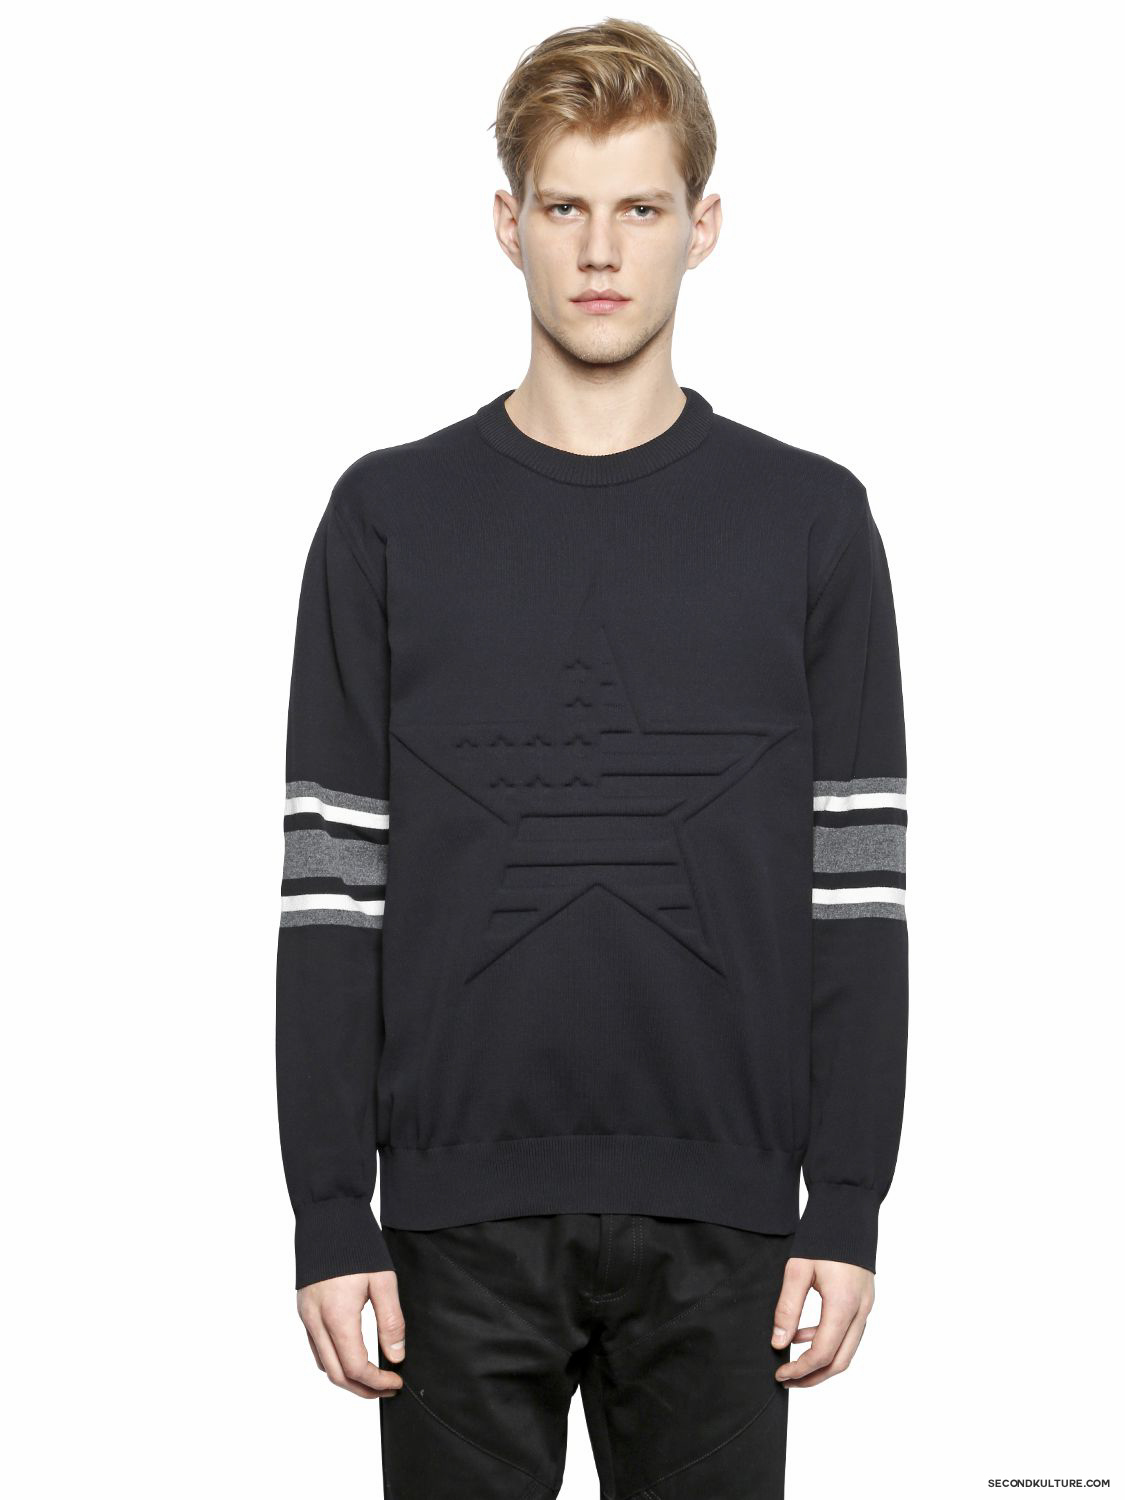 Givenchy-American-Flag-Star-Embossed-Striped-Sleeve-Print-Sweater-Fall-Winter-2015-1